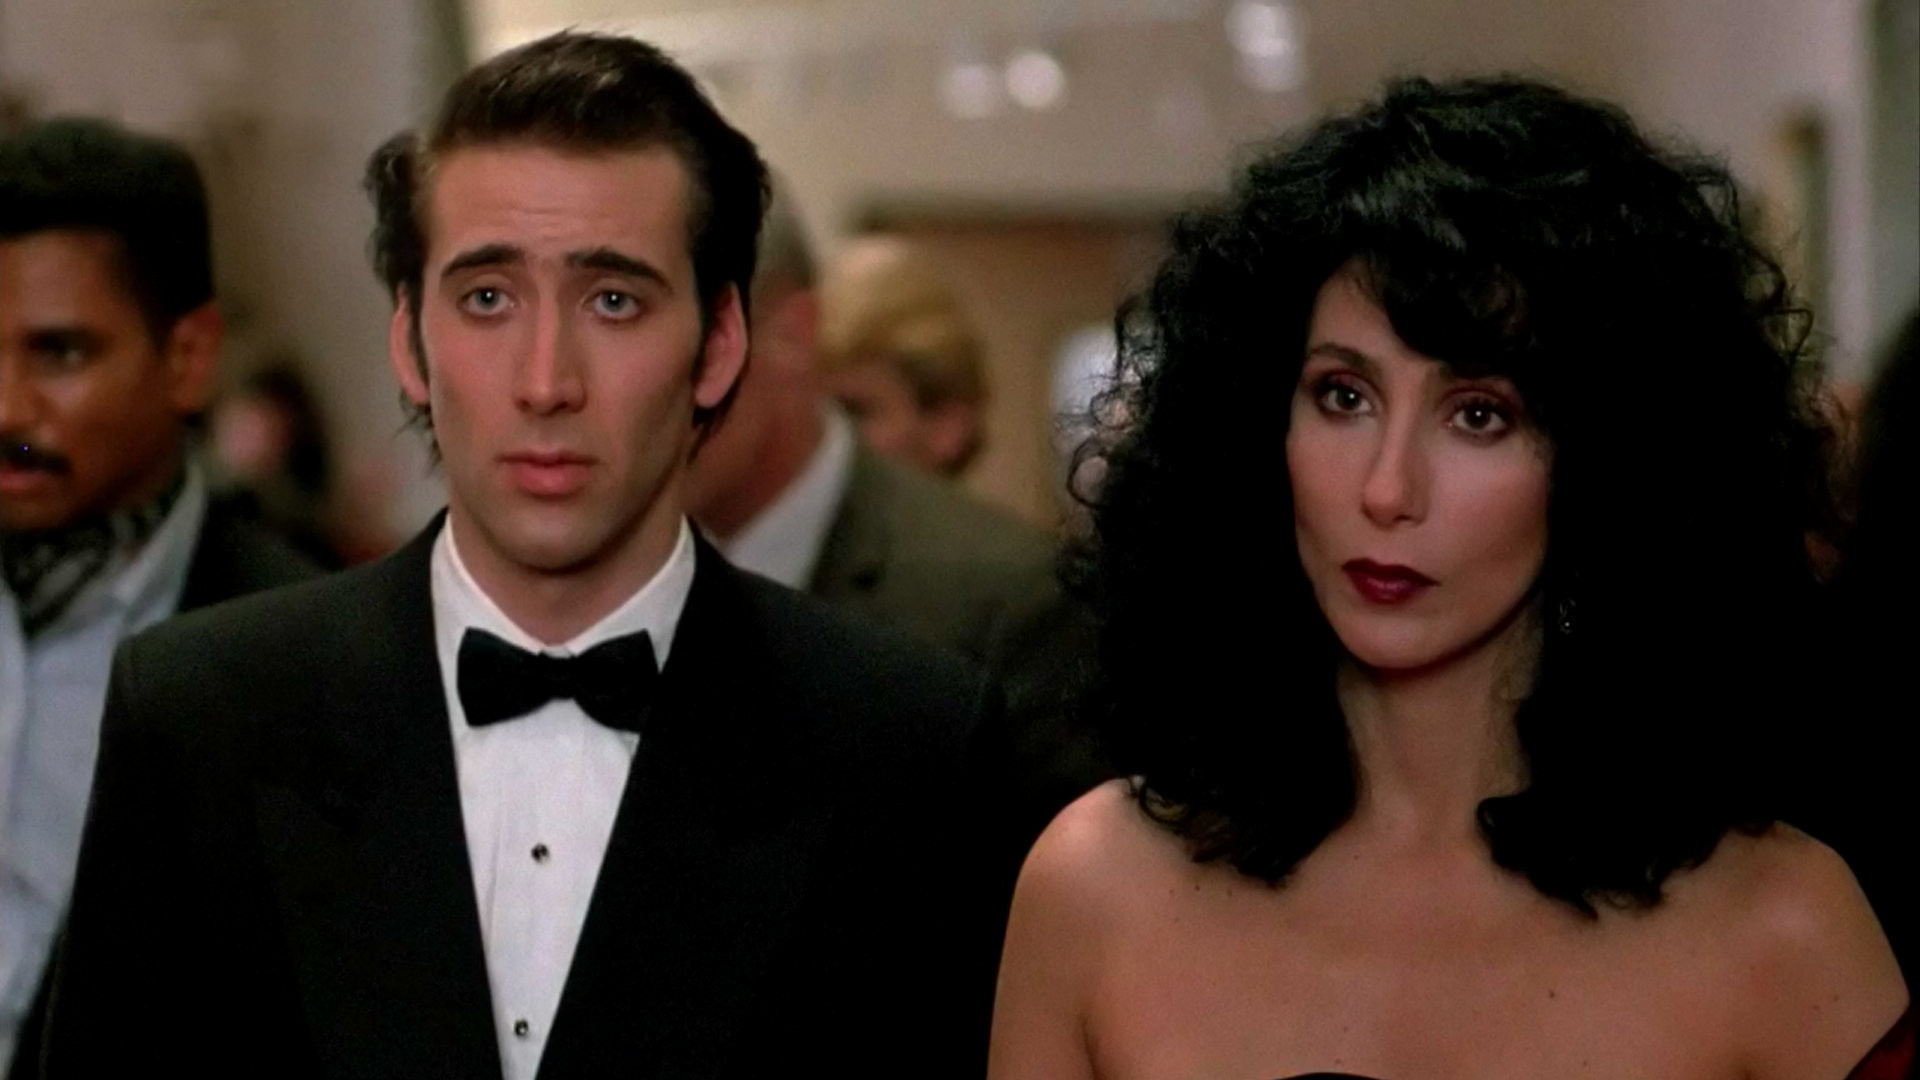 The cast in the movie moonstruck